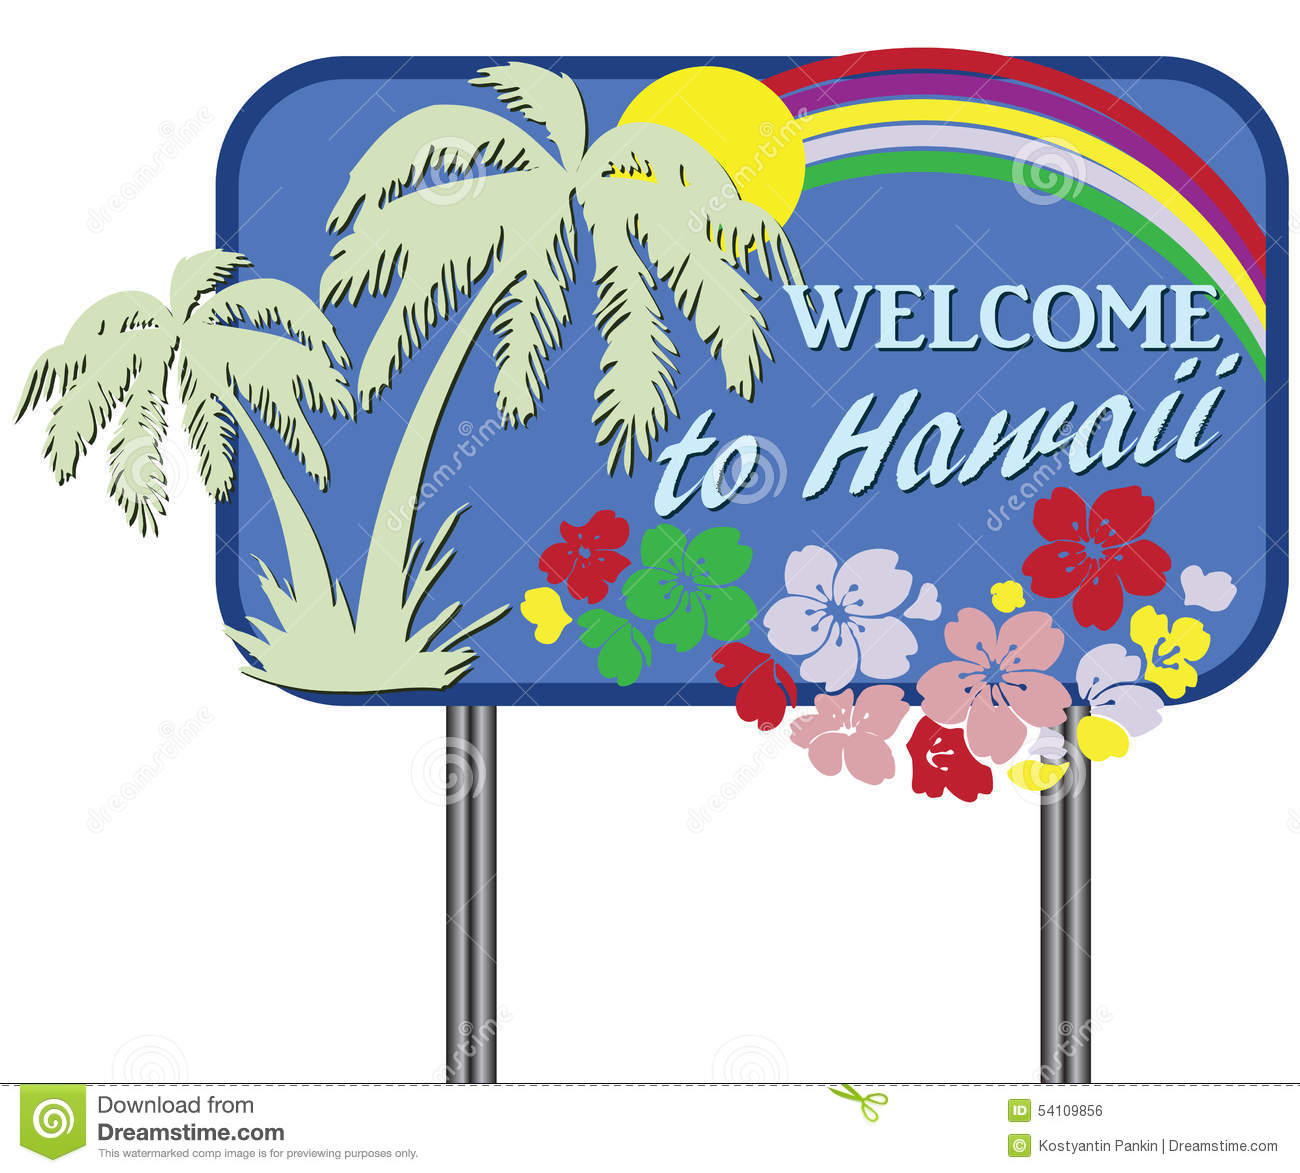 Stylized road sign Welcome to Hawaii. Vector illustration.